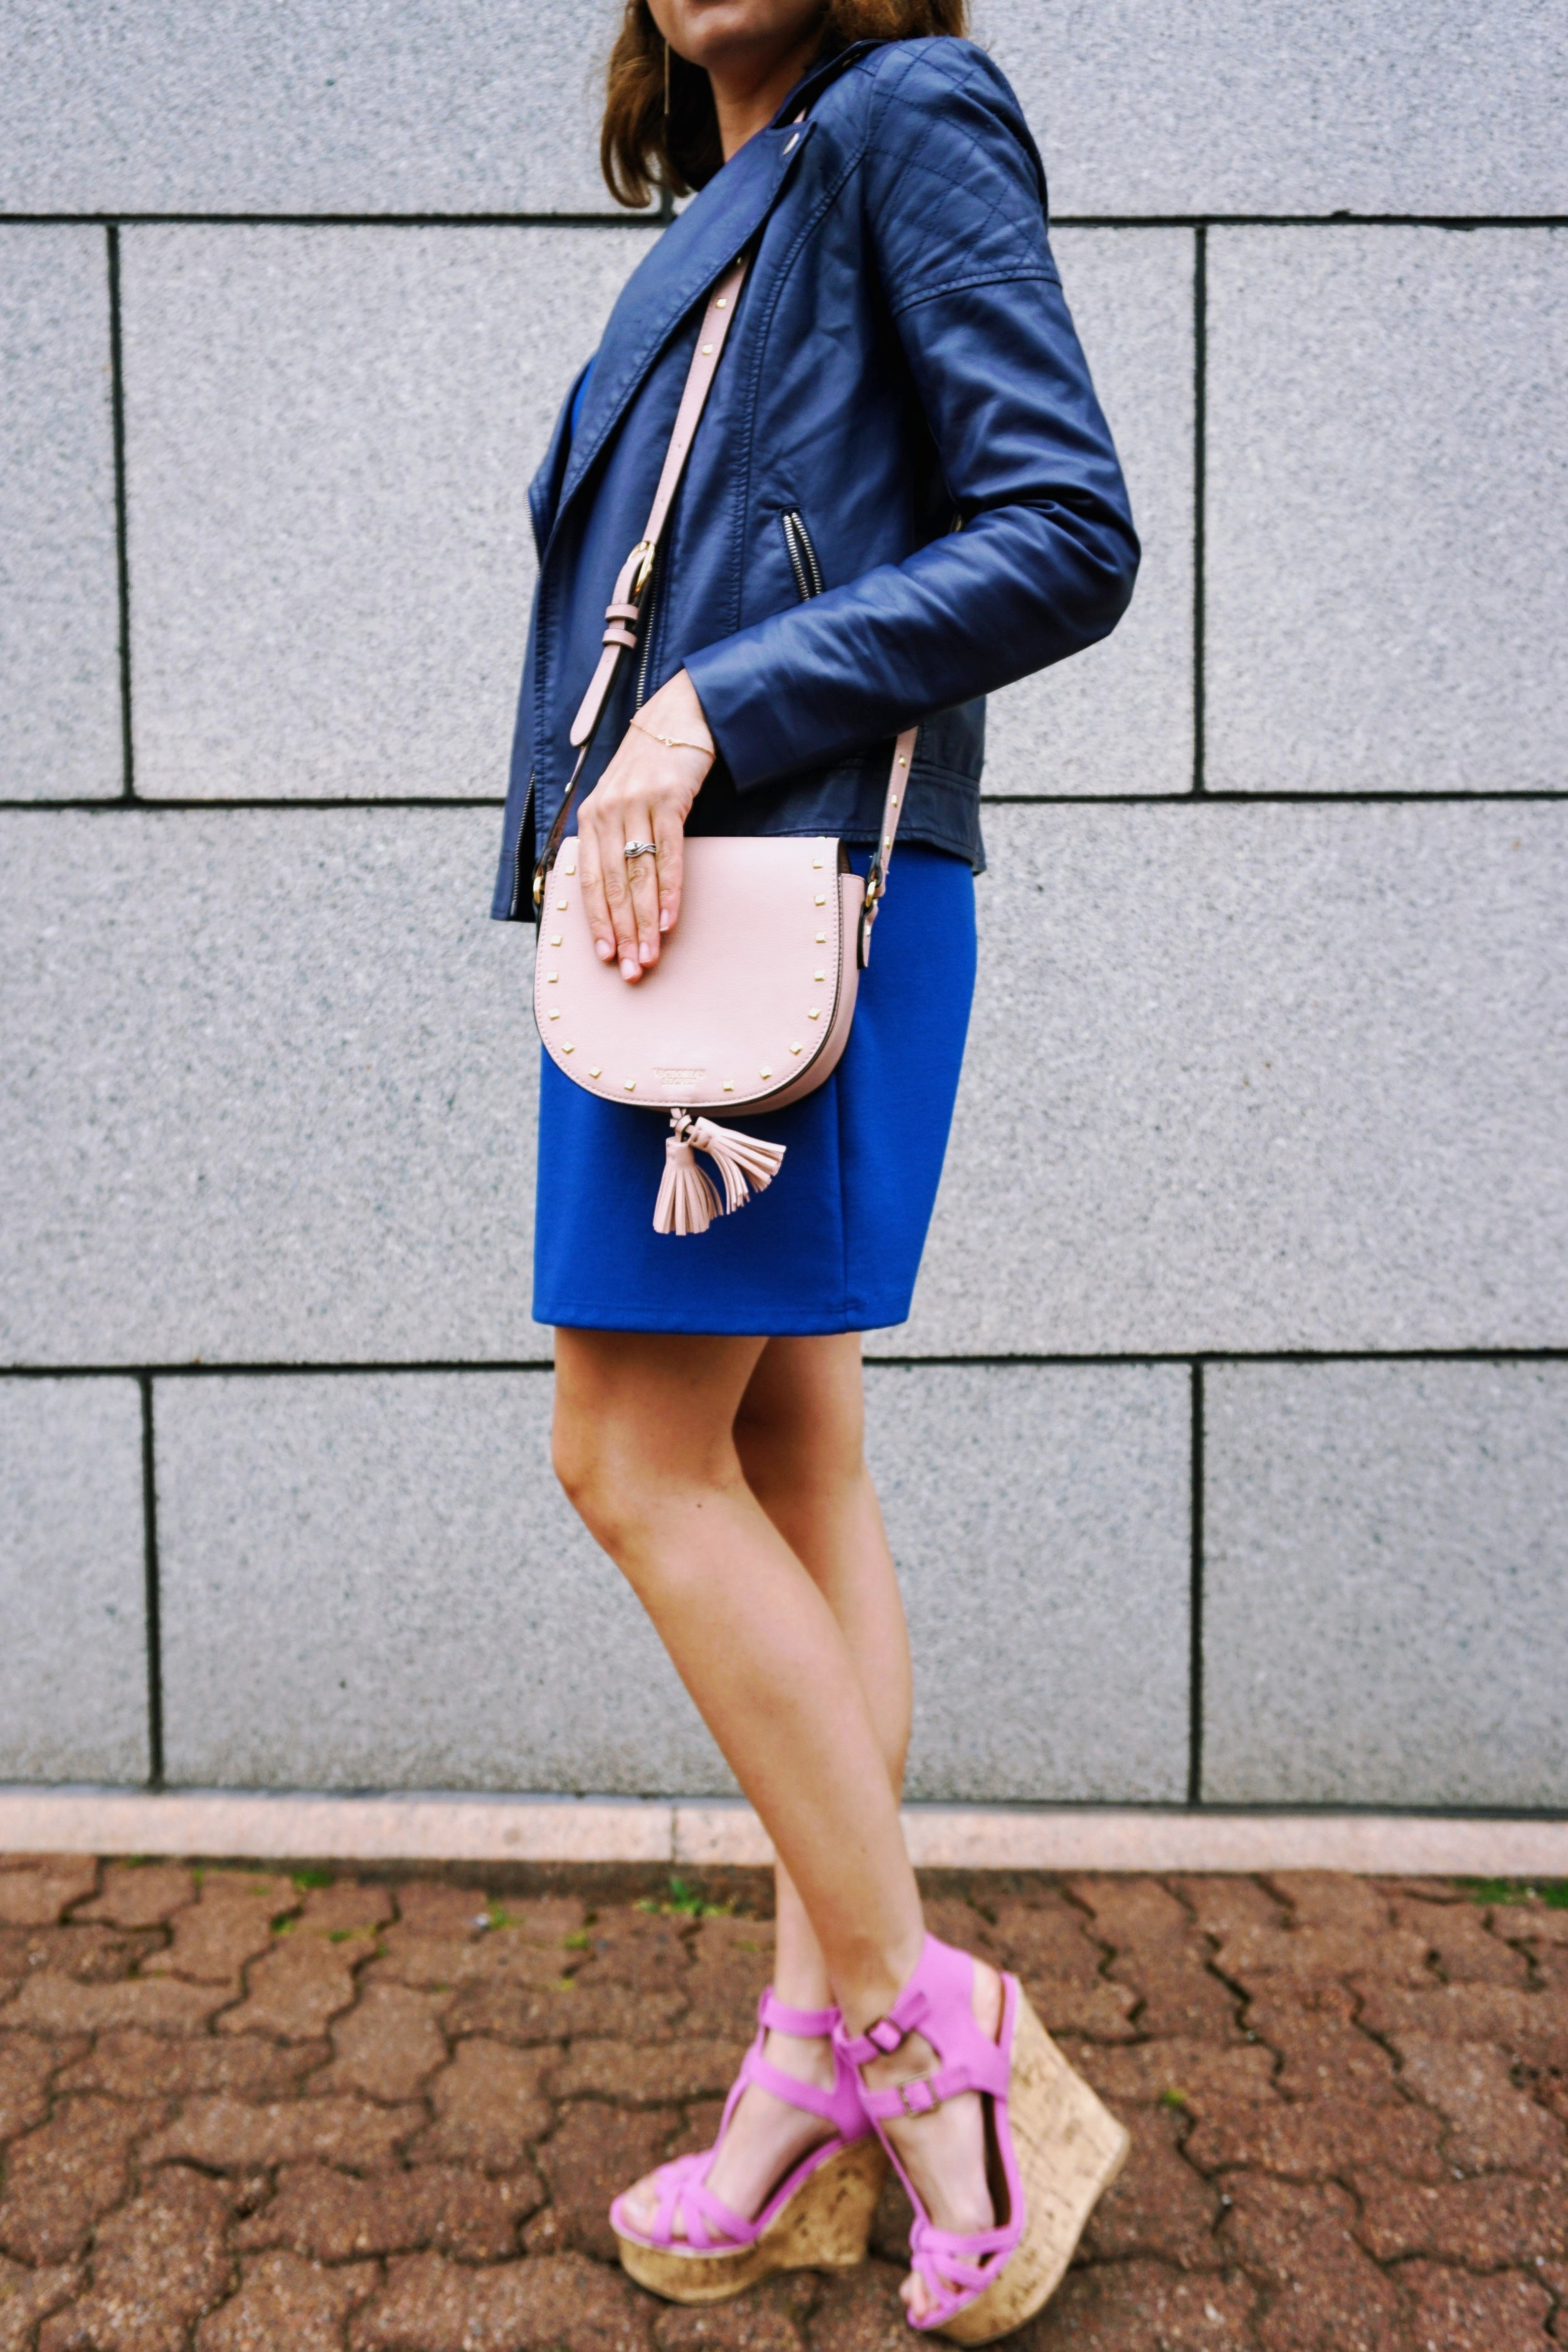 Details of a romantic spring outfit: blue dress, blue leather jacket, lavender wedges, and pink bag.